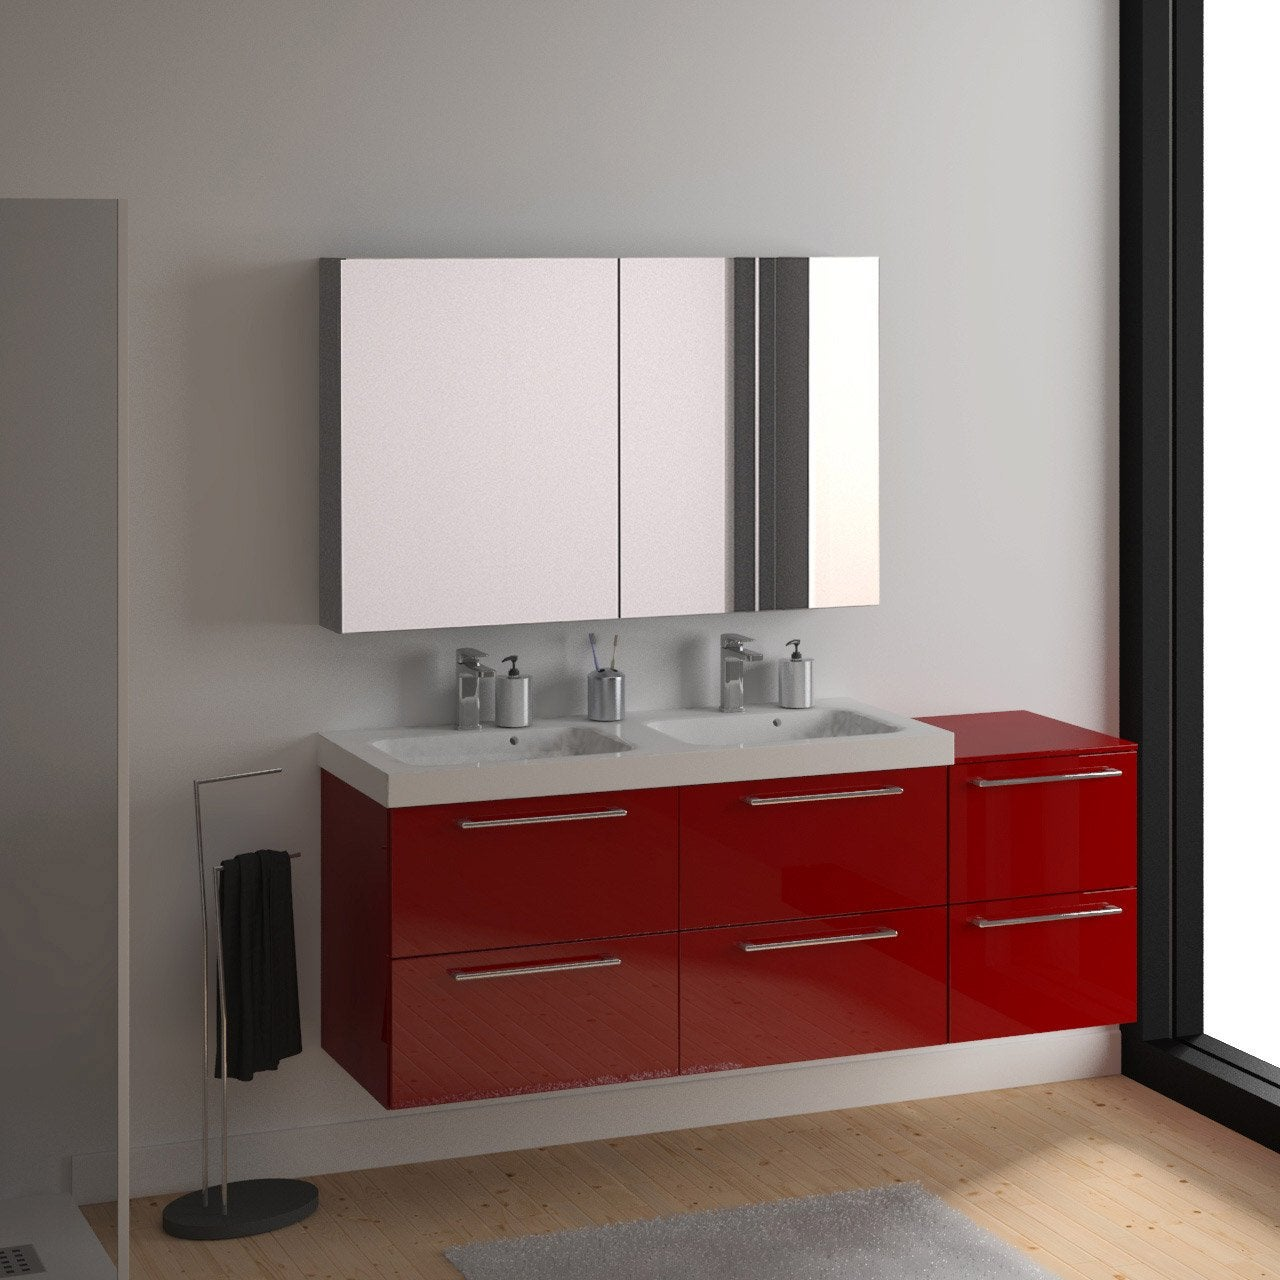 Meuble sous vasque x x cm rouge sensea for Meuble 2 vasques leroy merlin